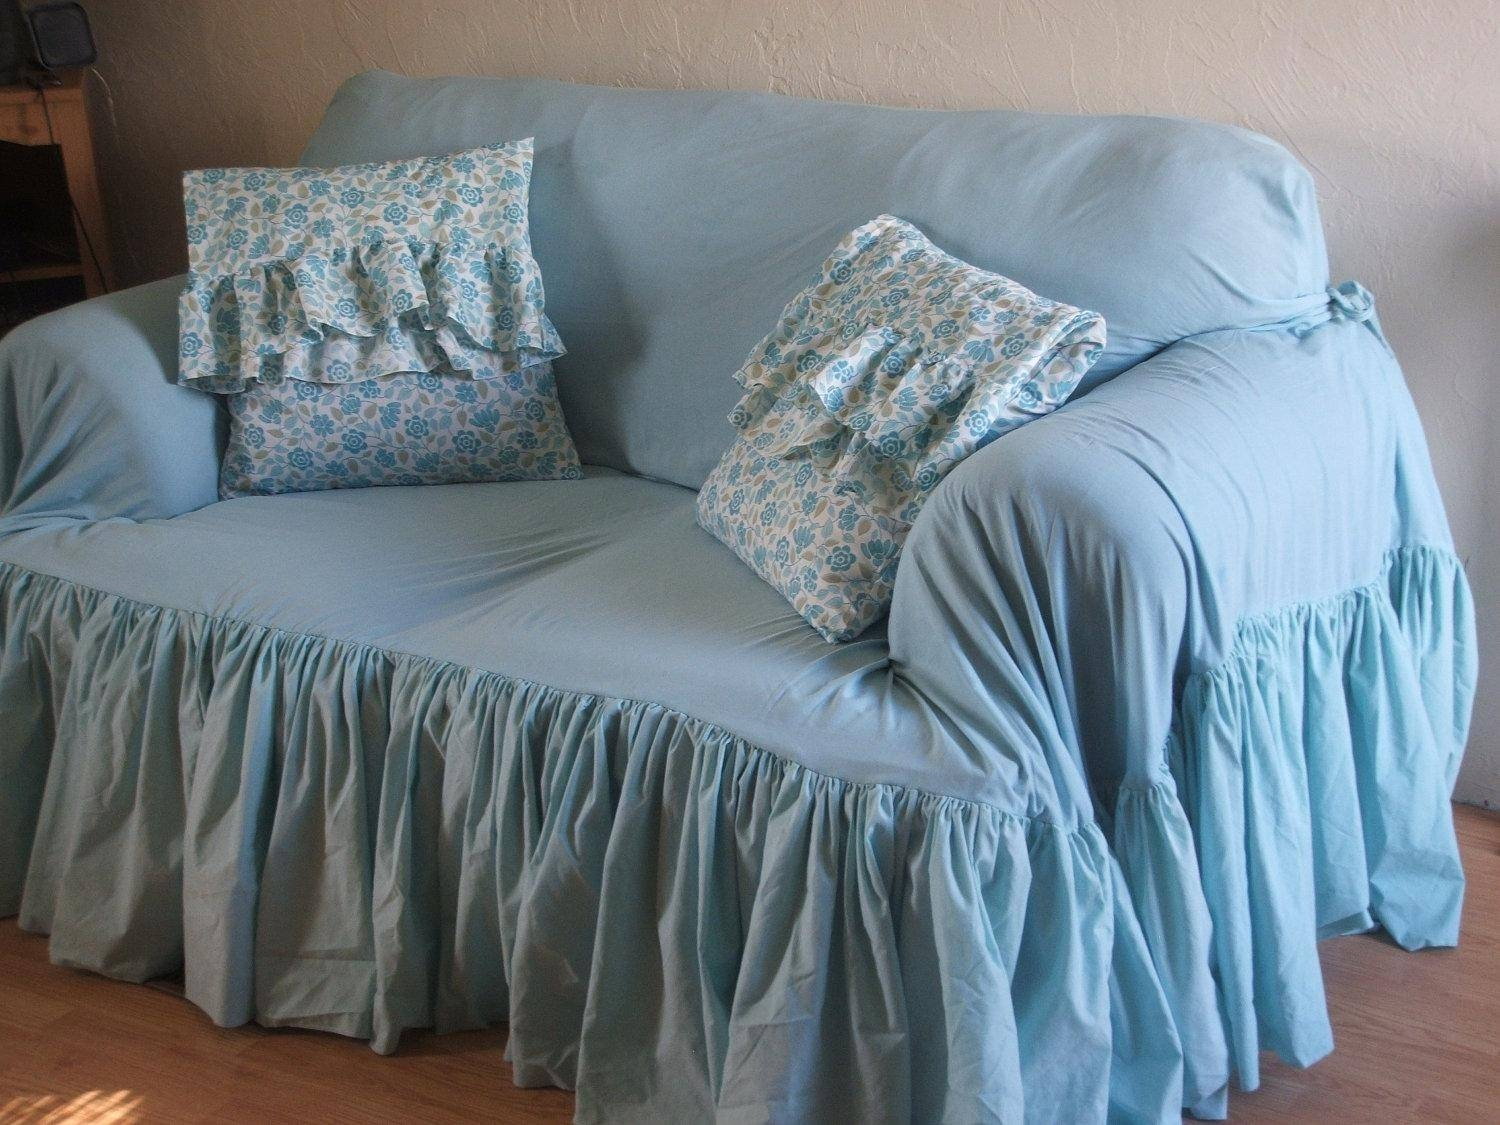 21 Ideas Of Shabby Chic Sectional Sofas Couches | Sofa Ideas With Regard To Shabby Chic Sofa Slipcovers (View 1 of 15)